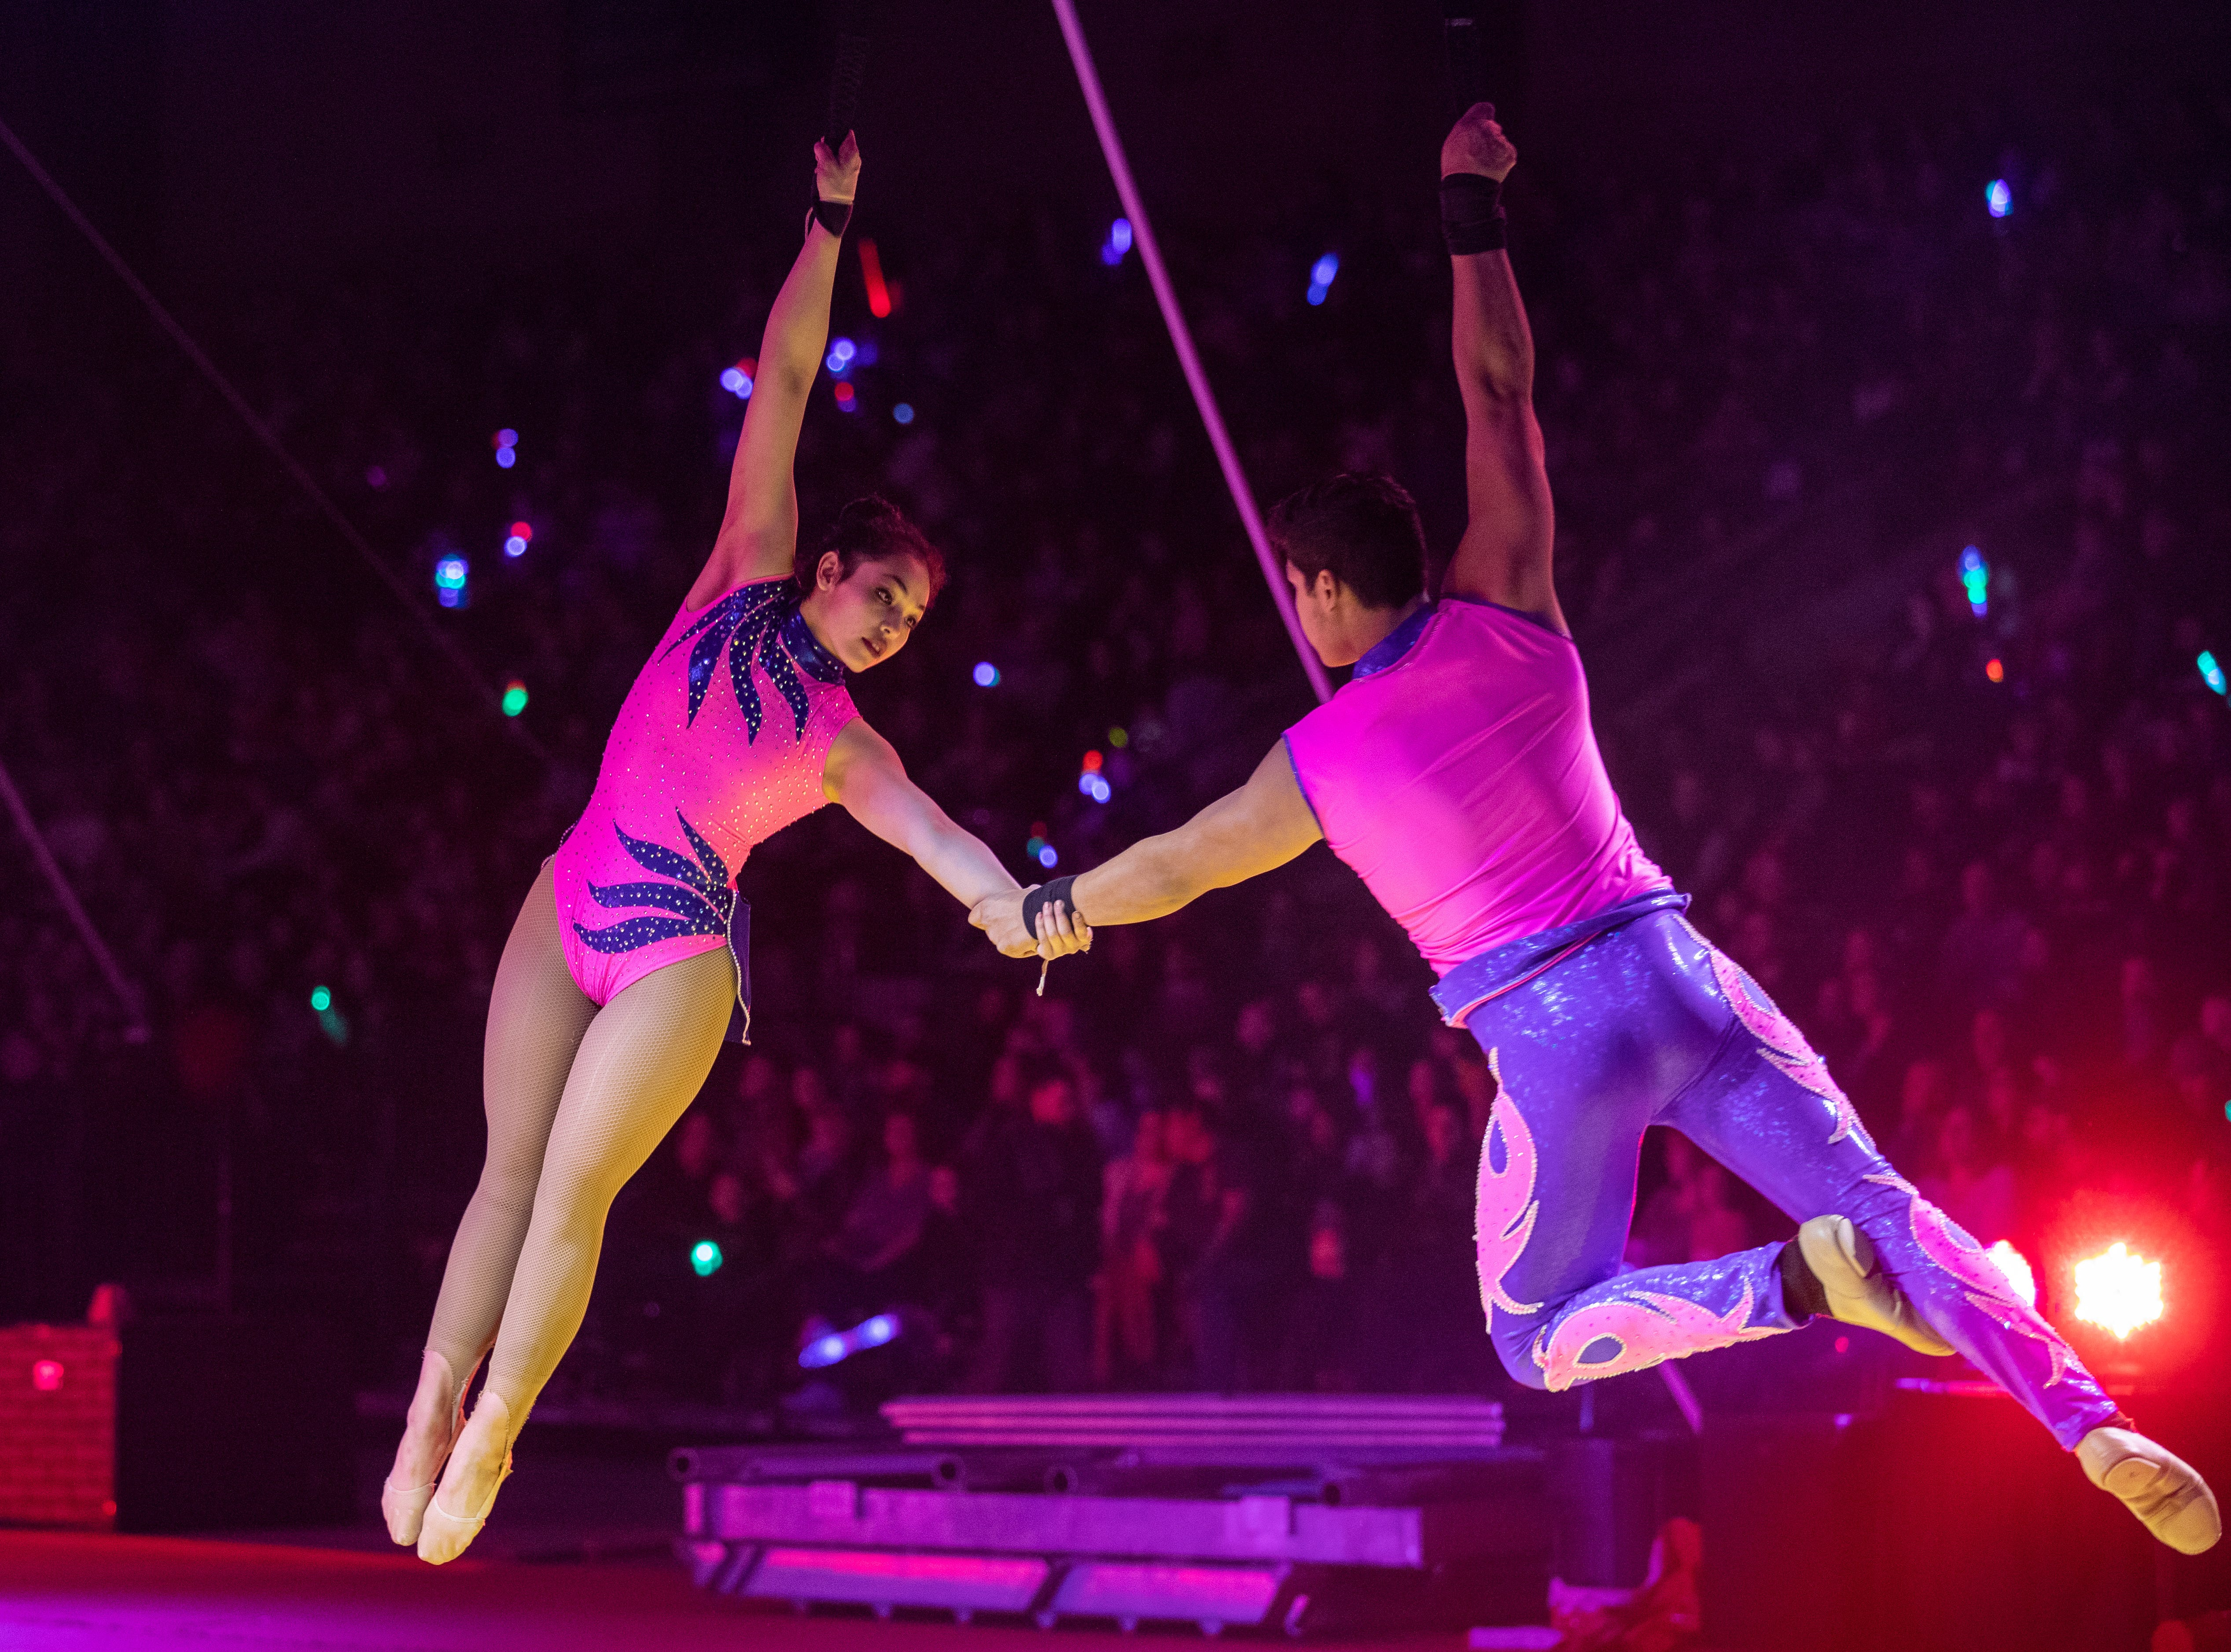 Aerial performers dance over the circus ring, Saturday, Feb. 9, 2019 in Louisville Ky.